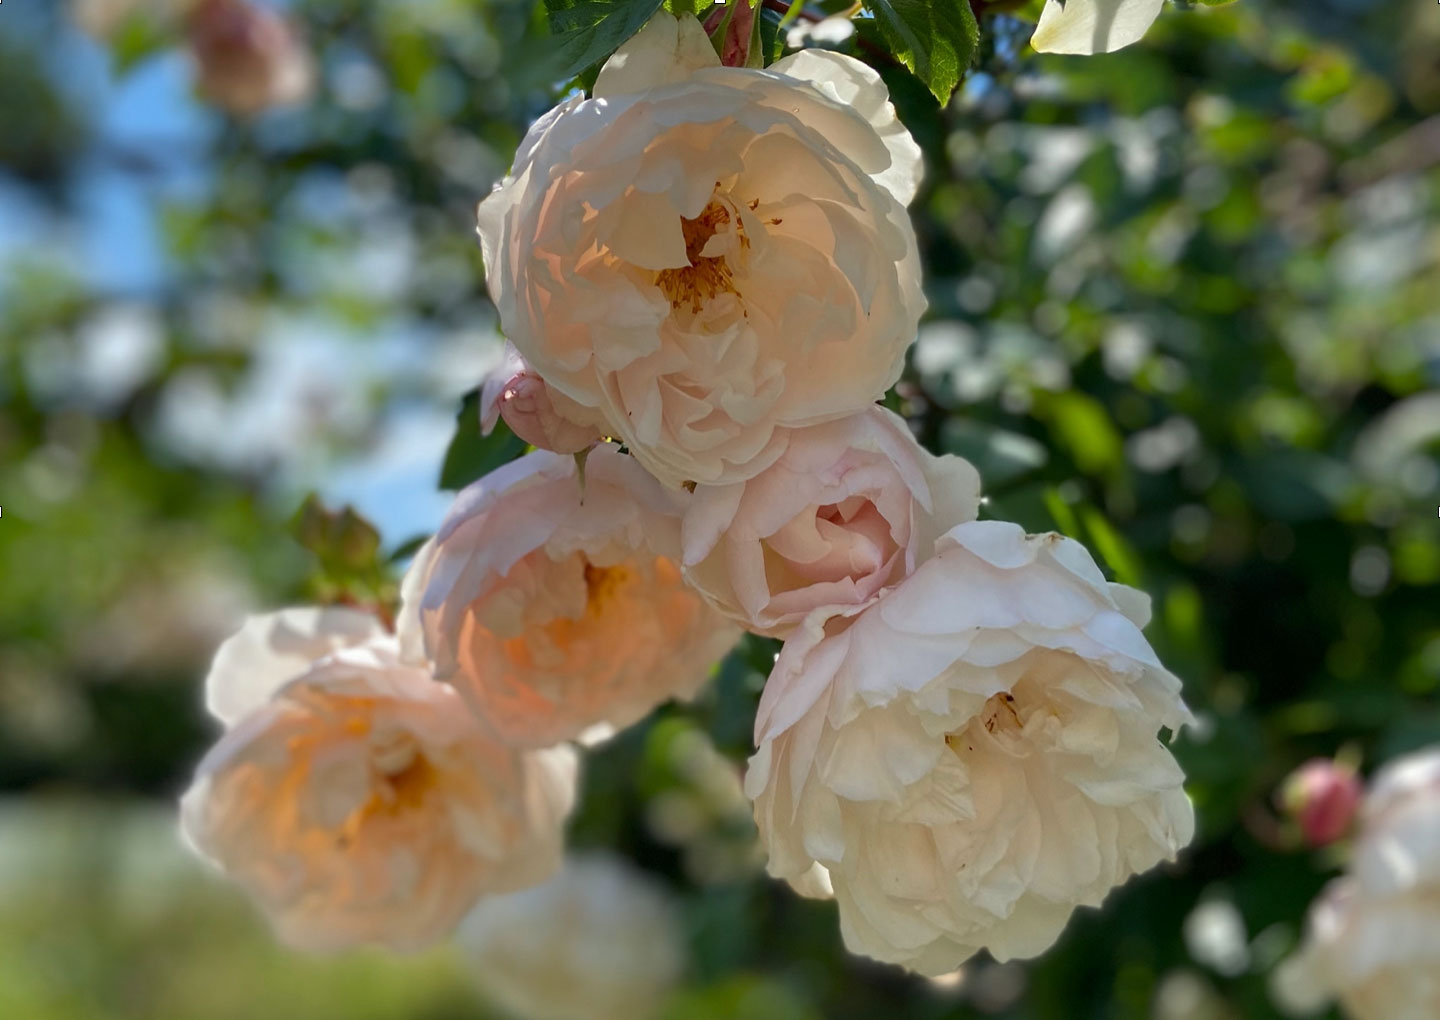 Rosa - The Generous Gardener - and the NGS